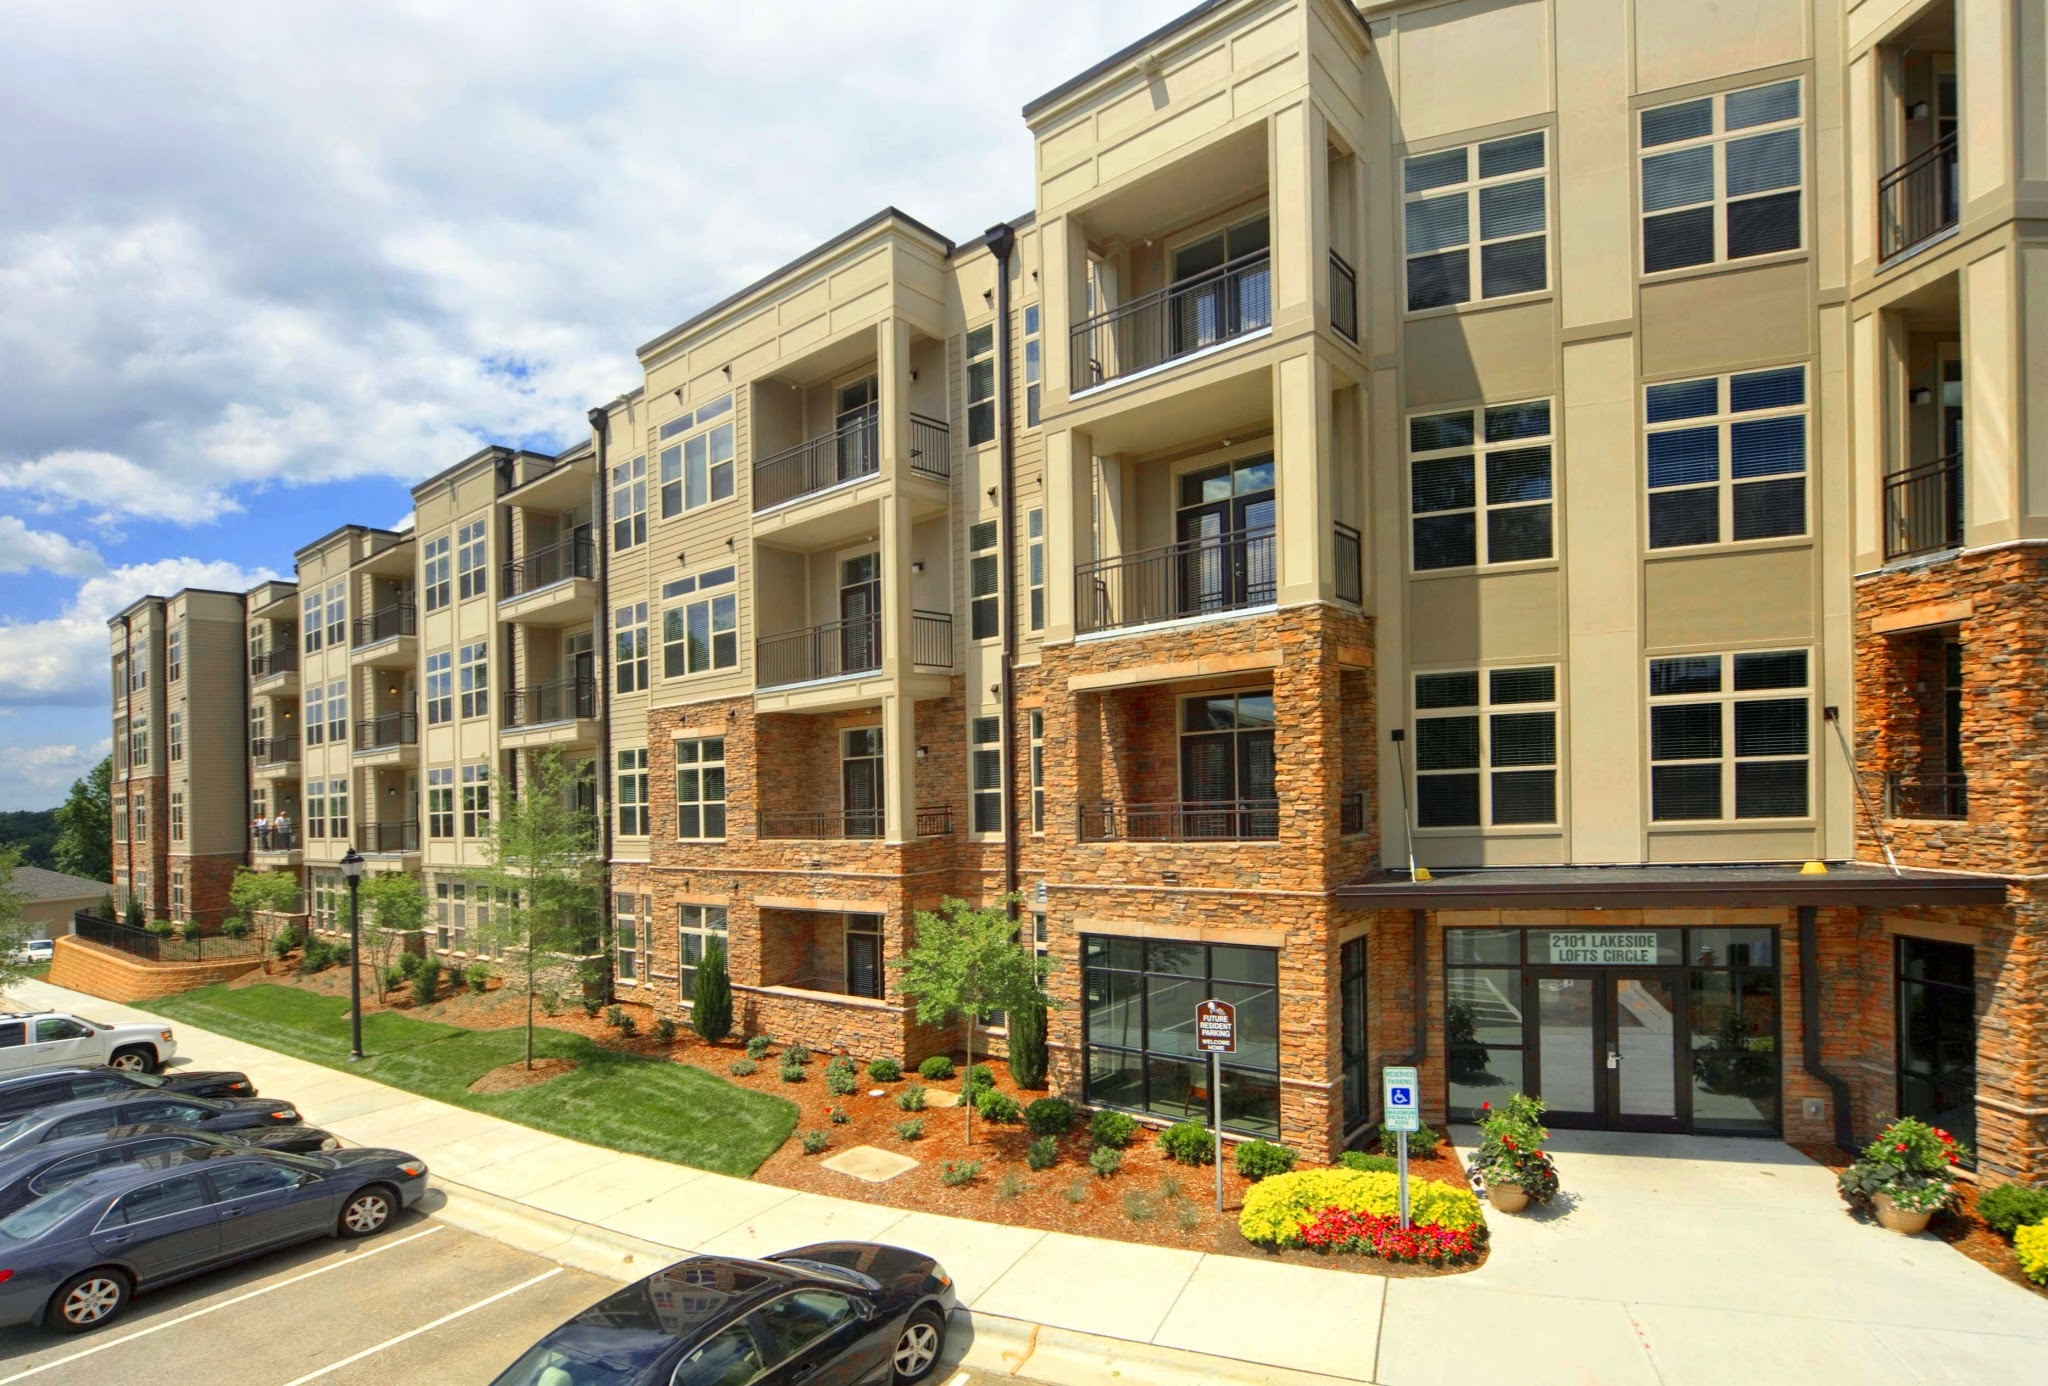 maple apartments cary nc maples at kildaire cary nc. Black Bedroom Furniture Sets. Home Design Ideas